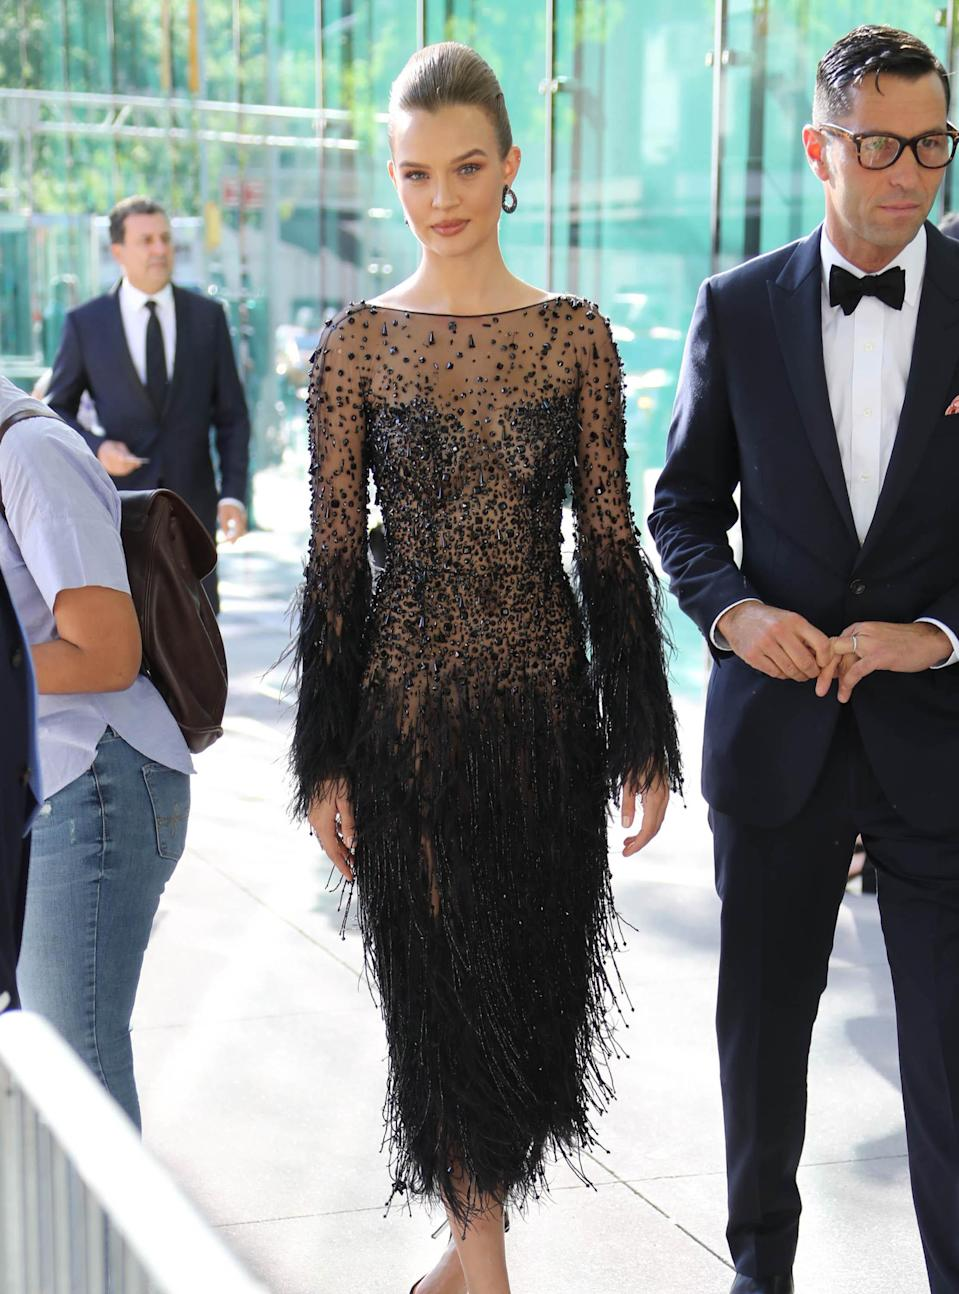 <p>Victoria's Secret model Josephine Skriver looked gorgeous in a sheer, feathered dress at the Fragrance Awards. <br><em>[Photo: Getty]</em> </p>